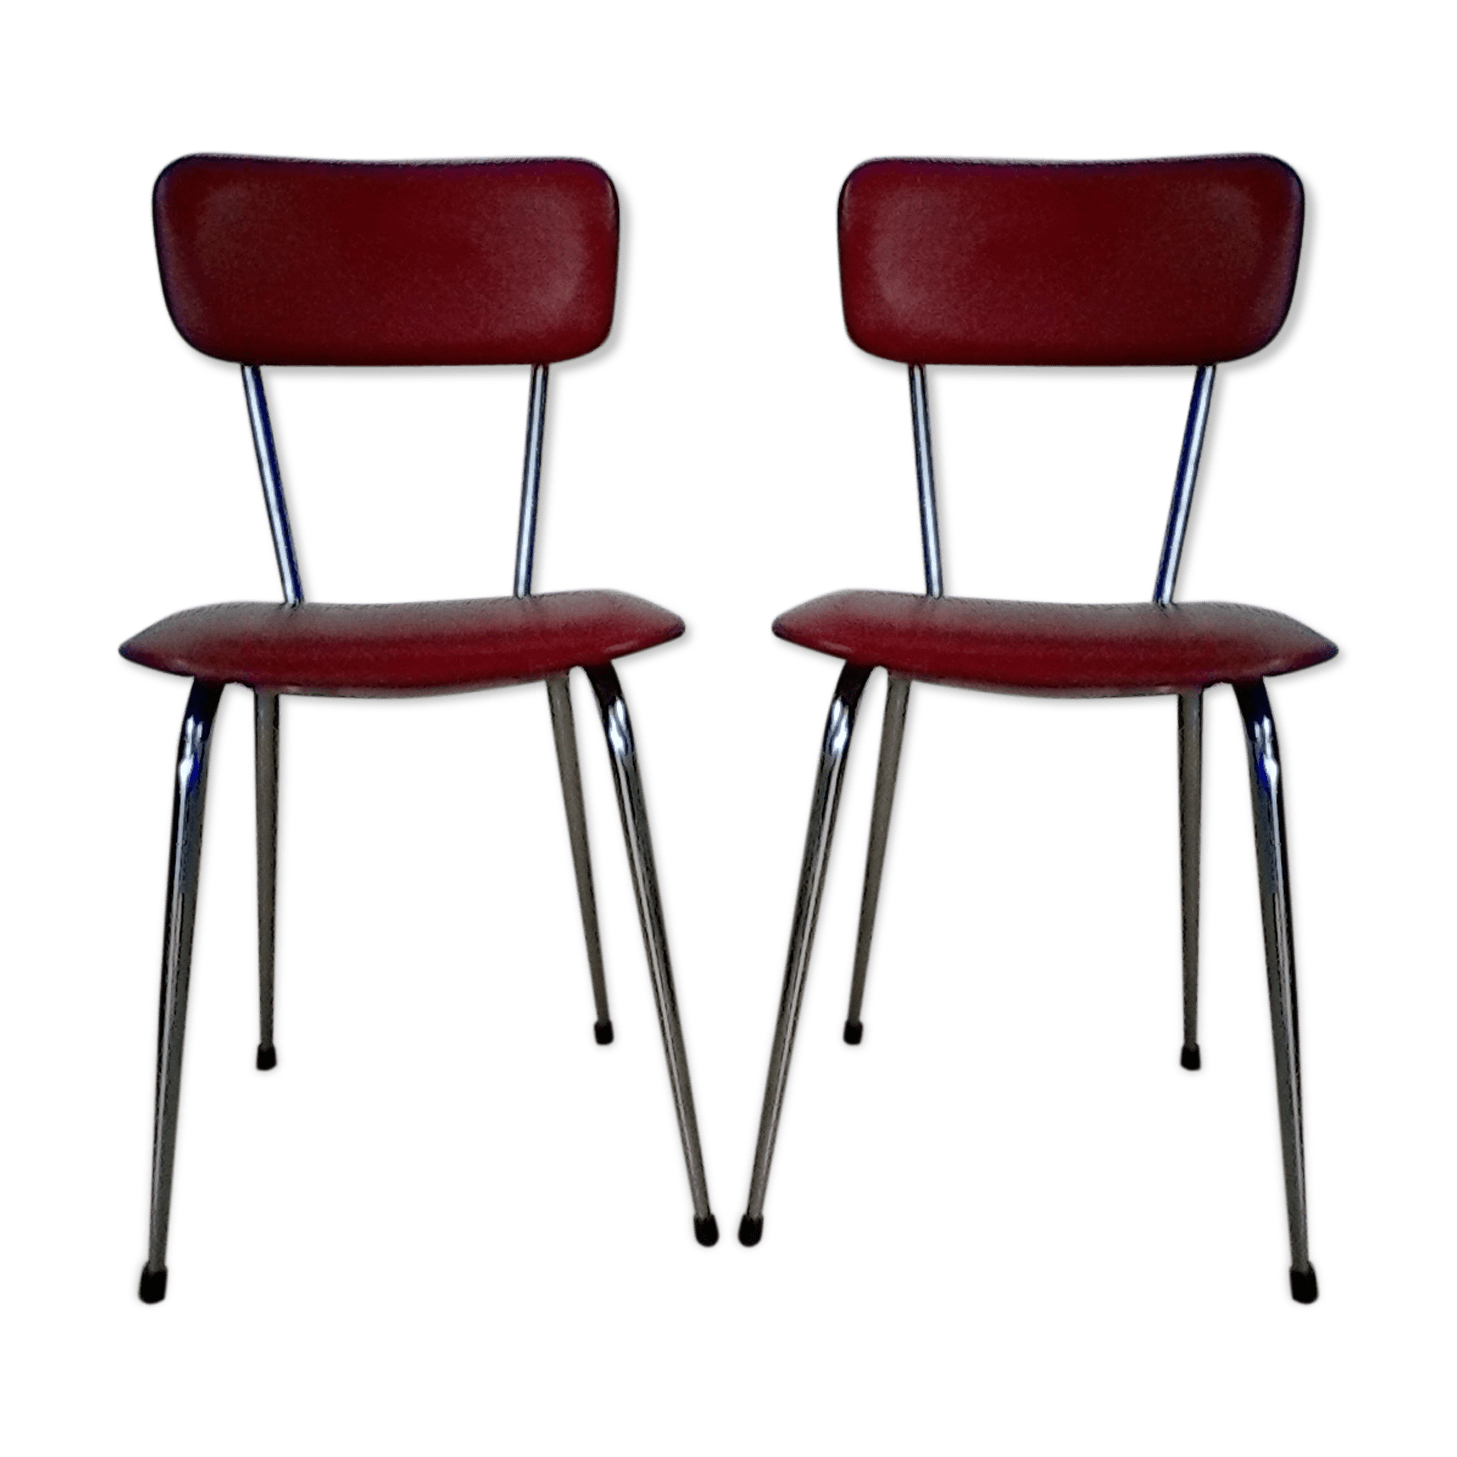 Chaise De Cuisine Rouge Chaise Cuisine Rouge Great Tabouret With Chaise Cuisine